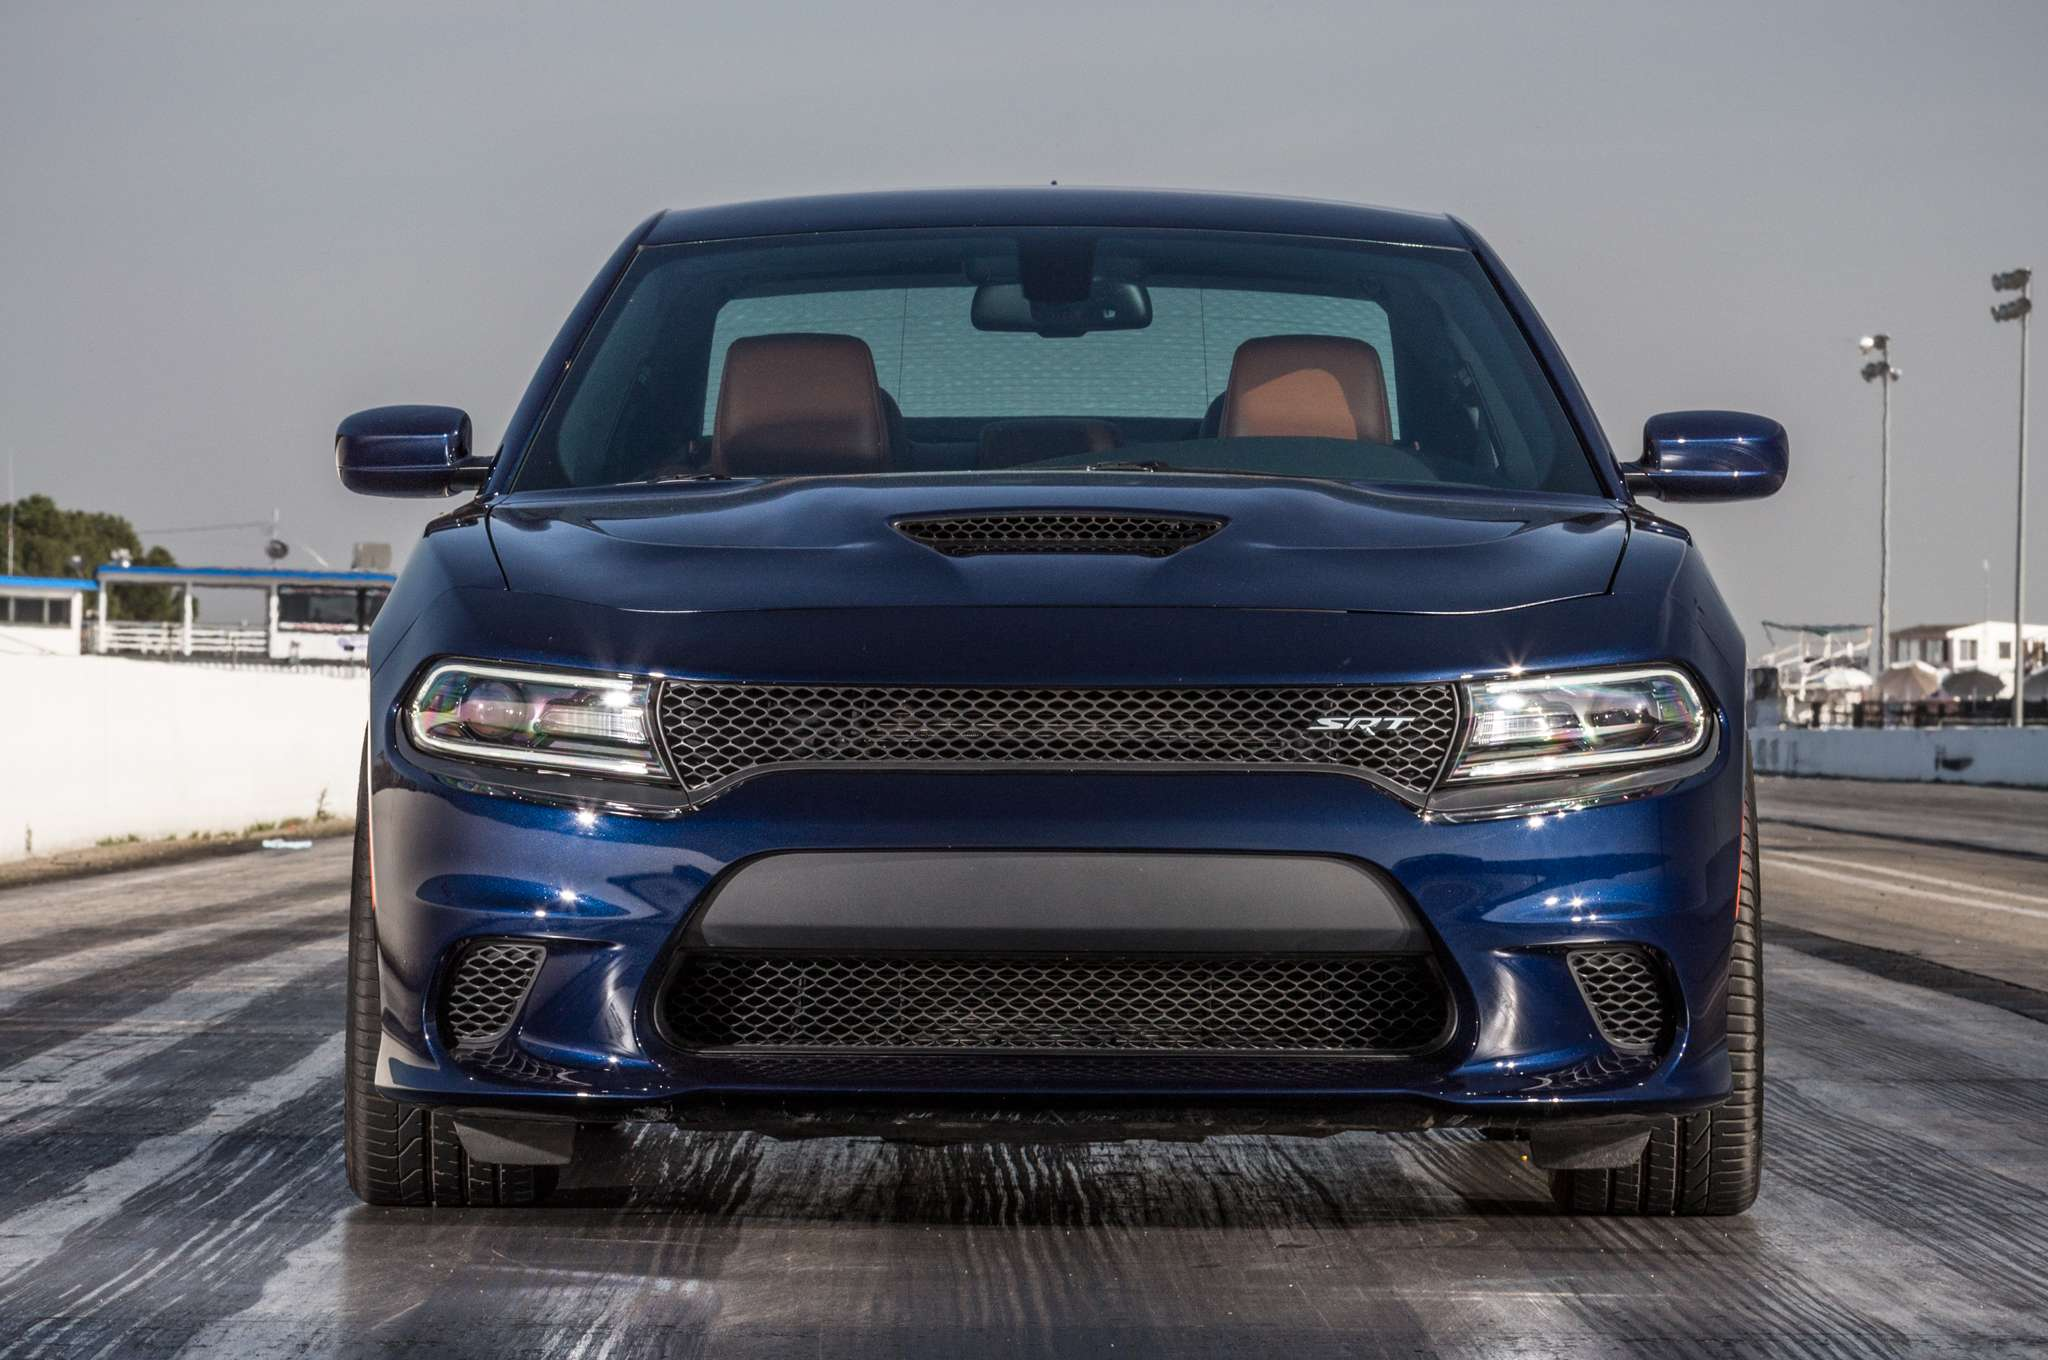 2015 Dodge Charger SRT Hellcat vs. 2015 Tesla Model S P85D